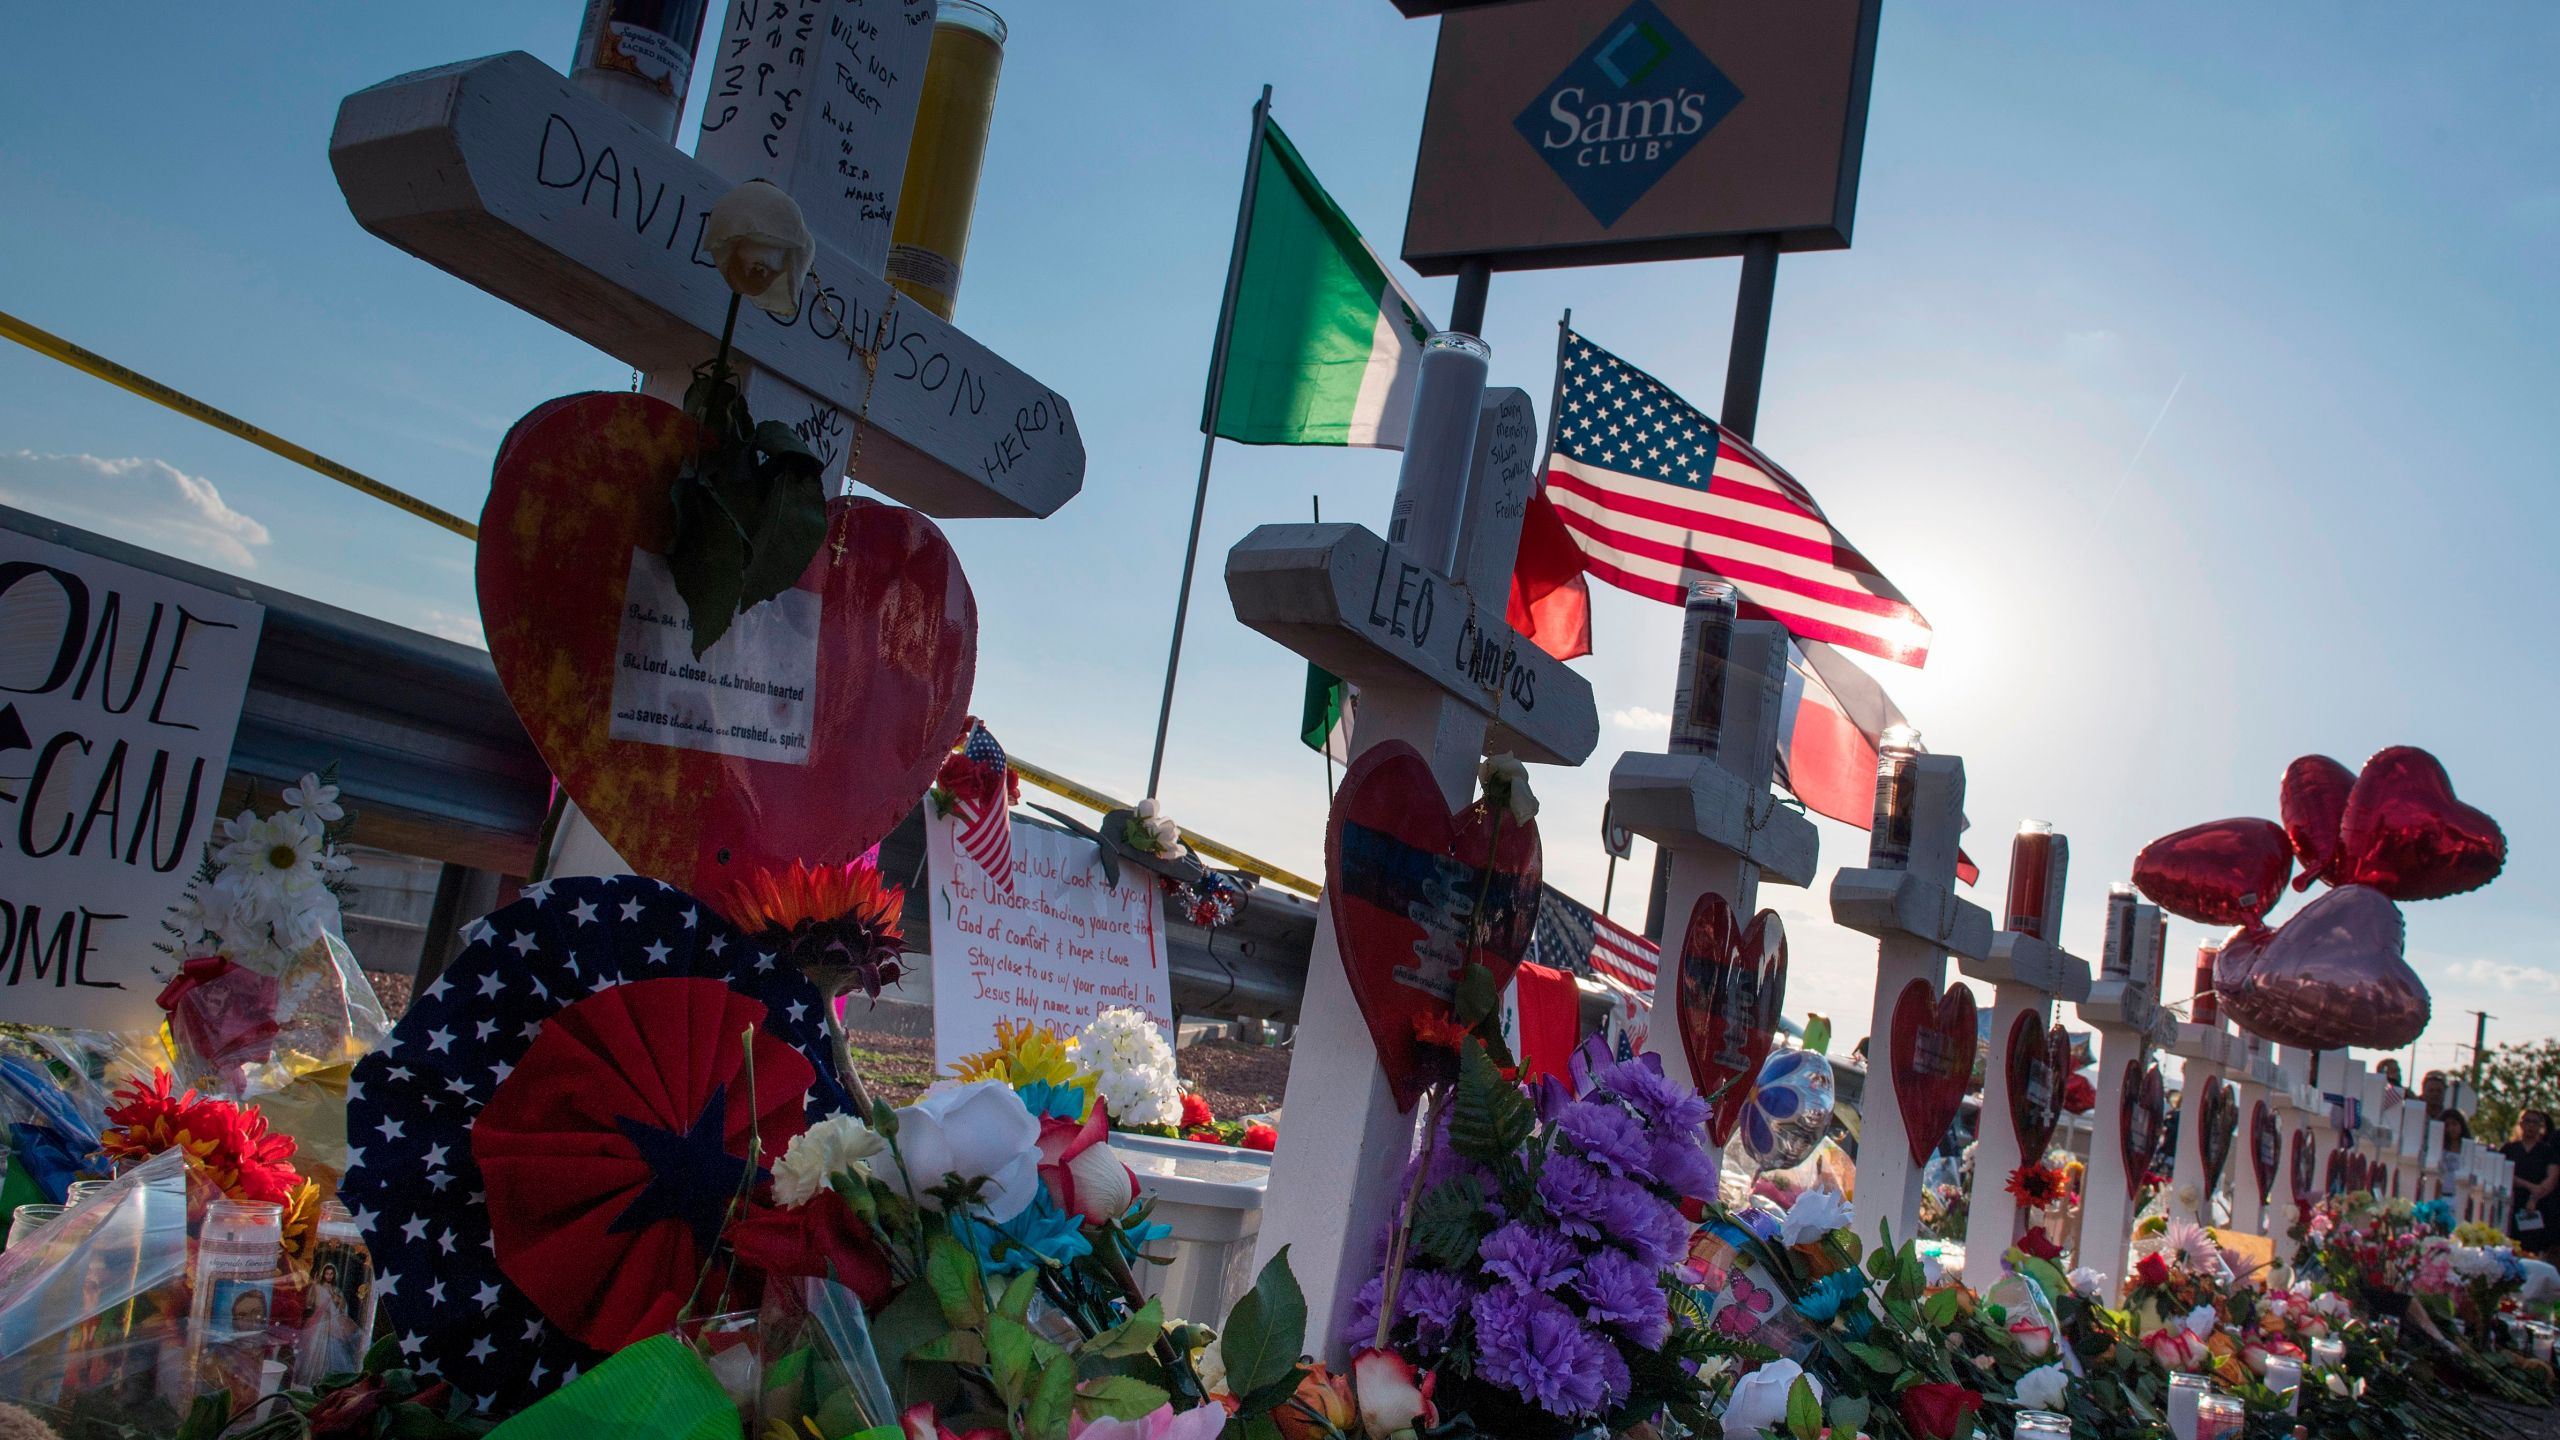 Crosses and flowers at a makeshift memorial for victims of Walmart shooting that left a total of 22 people dead at the Cielo Vista Mall WalMart in El Paso, Texas, on August 5, 2019. (Credit: MARK RALSTON/AFP/Getty Images)